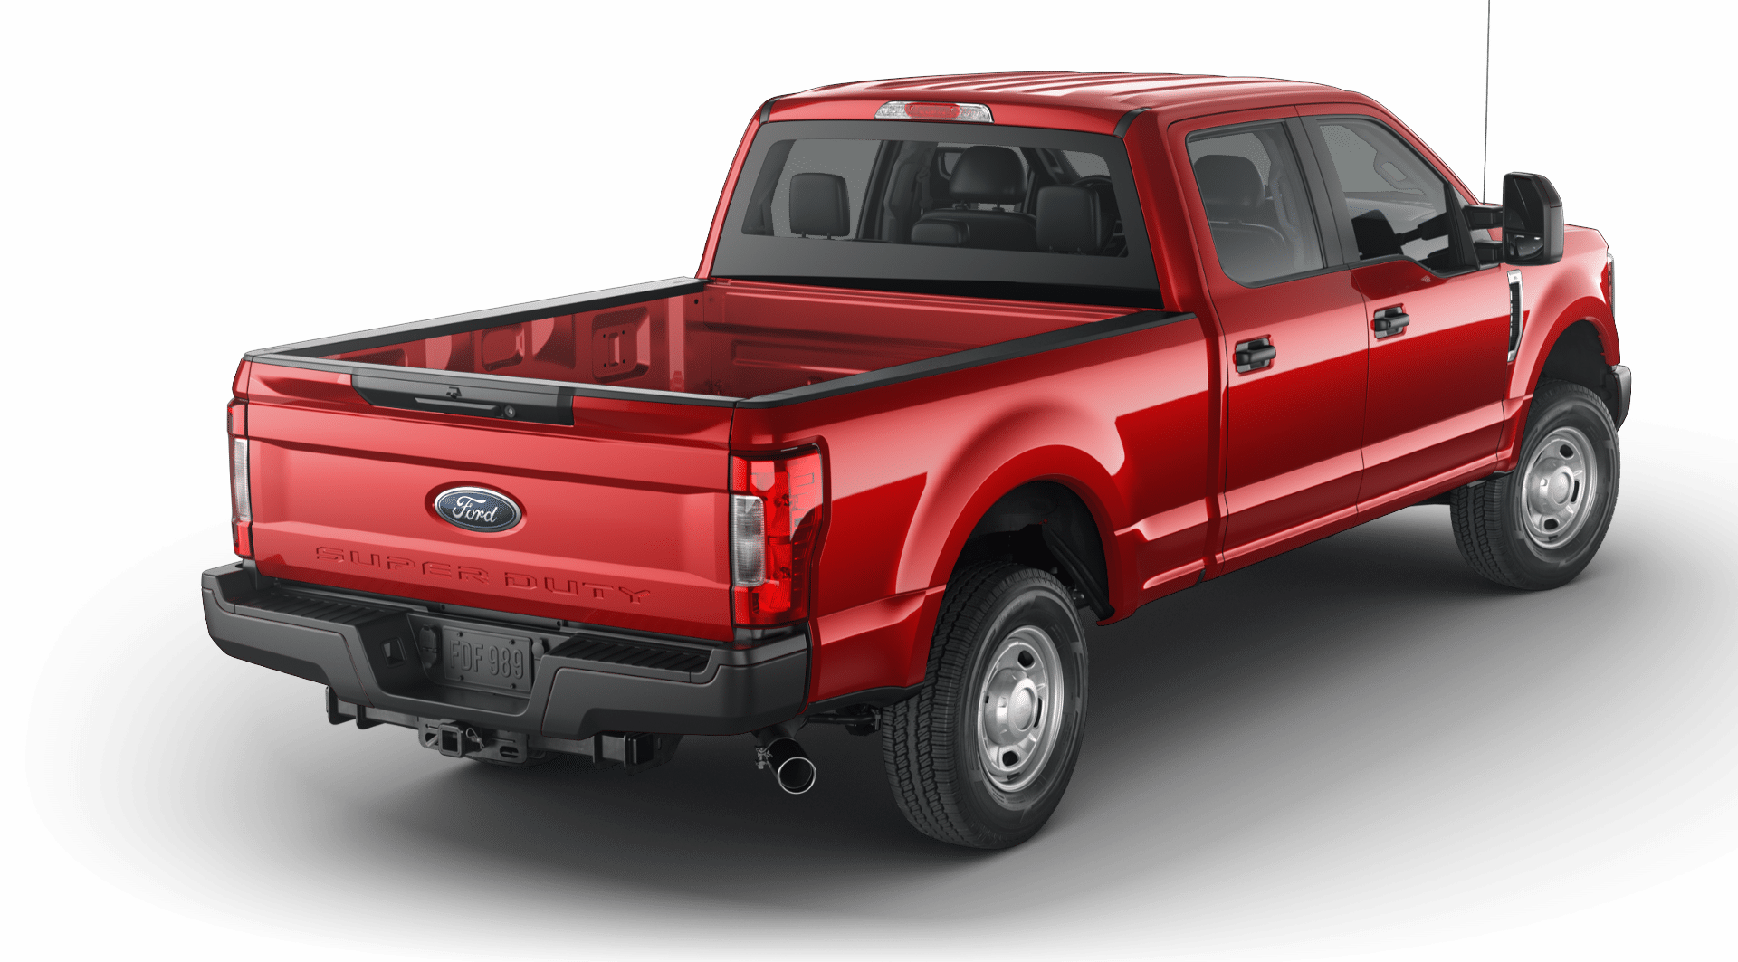 Ford F-250 2019 XL 6.2 V8 SOHC FFV Бензин 6-ст. АКПП TorqShift® Heavy-Duty SelectShift-G™ Задний